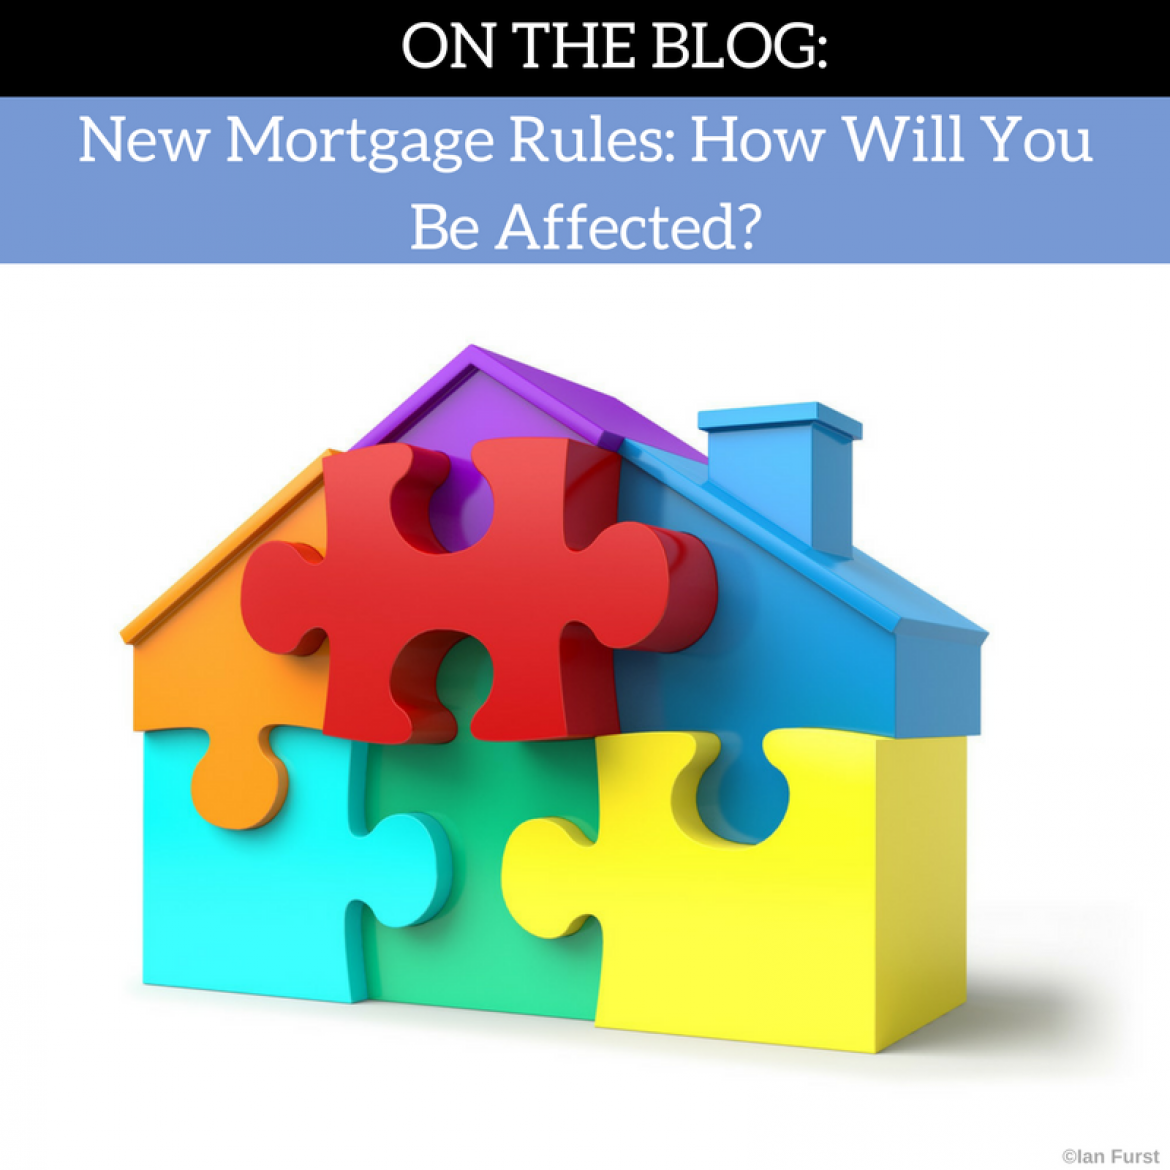 Stress Test Osfi: New Mortgage Rules: How Will You Be Affected?